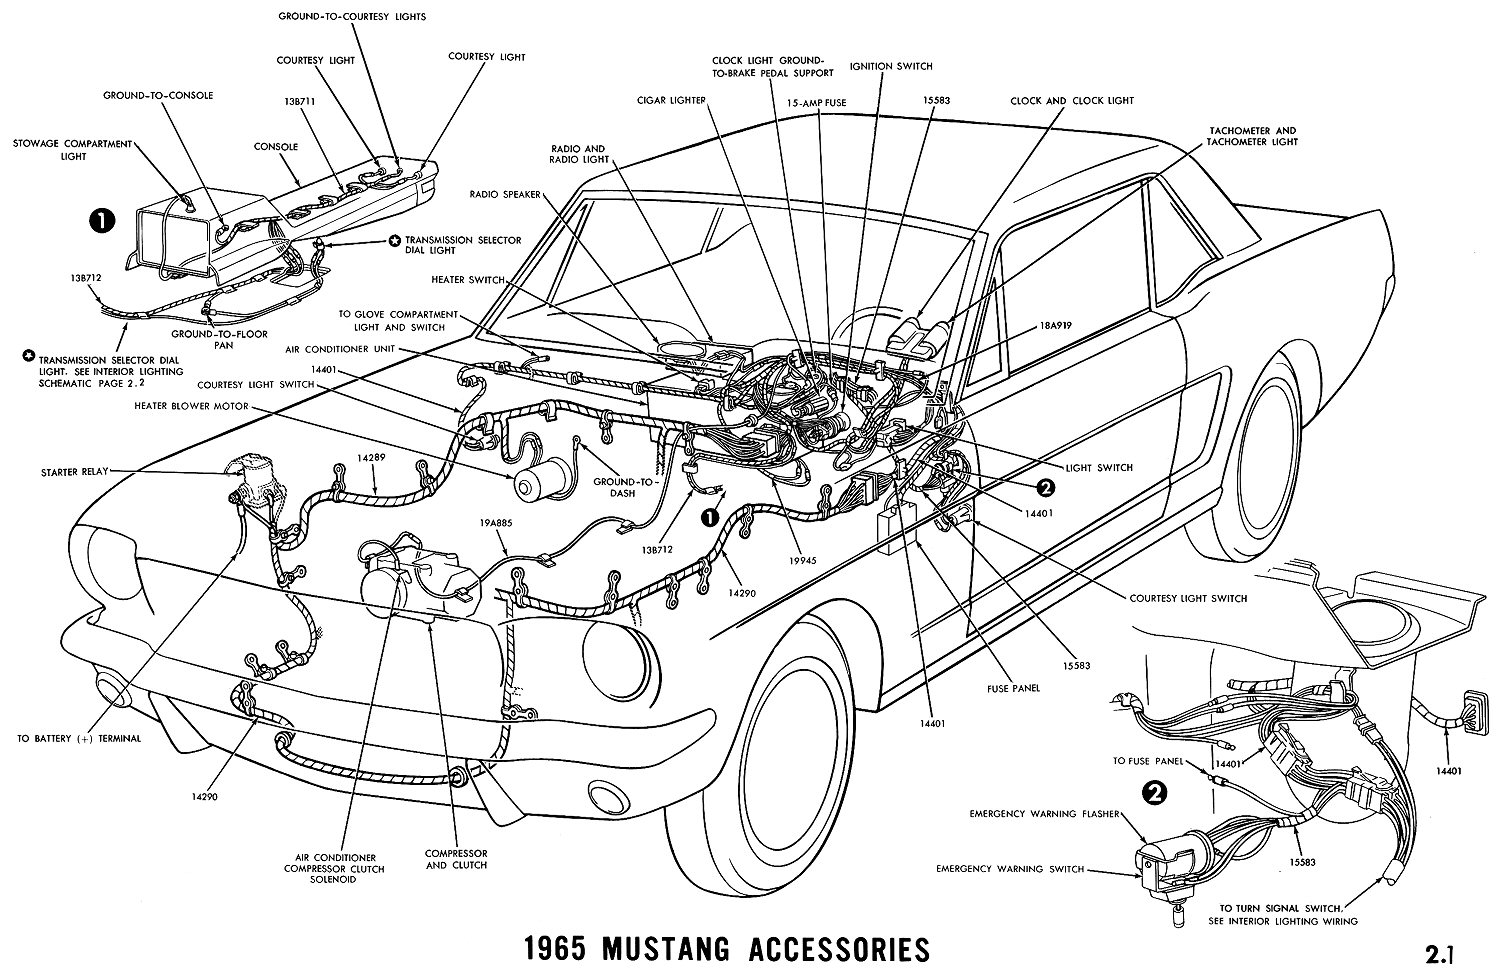 hight resolution of 1965 mustang accesories diagram 65 mustang accesories 1965 mustang accesories diagram 2013 mustang fuse box location